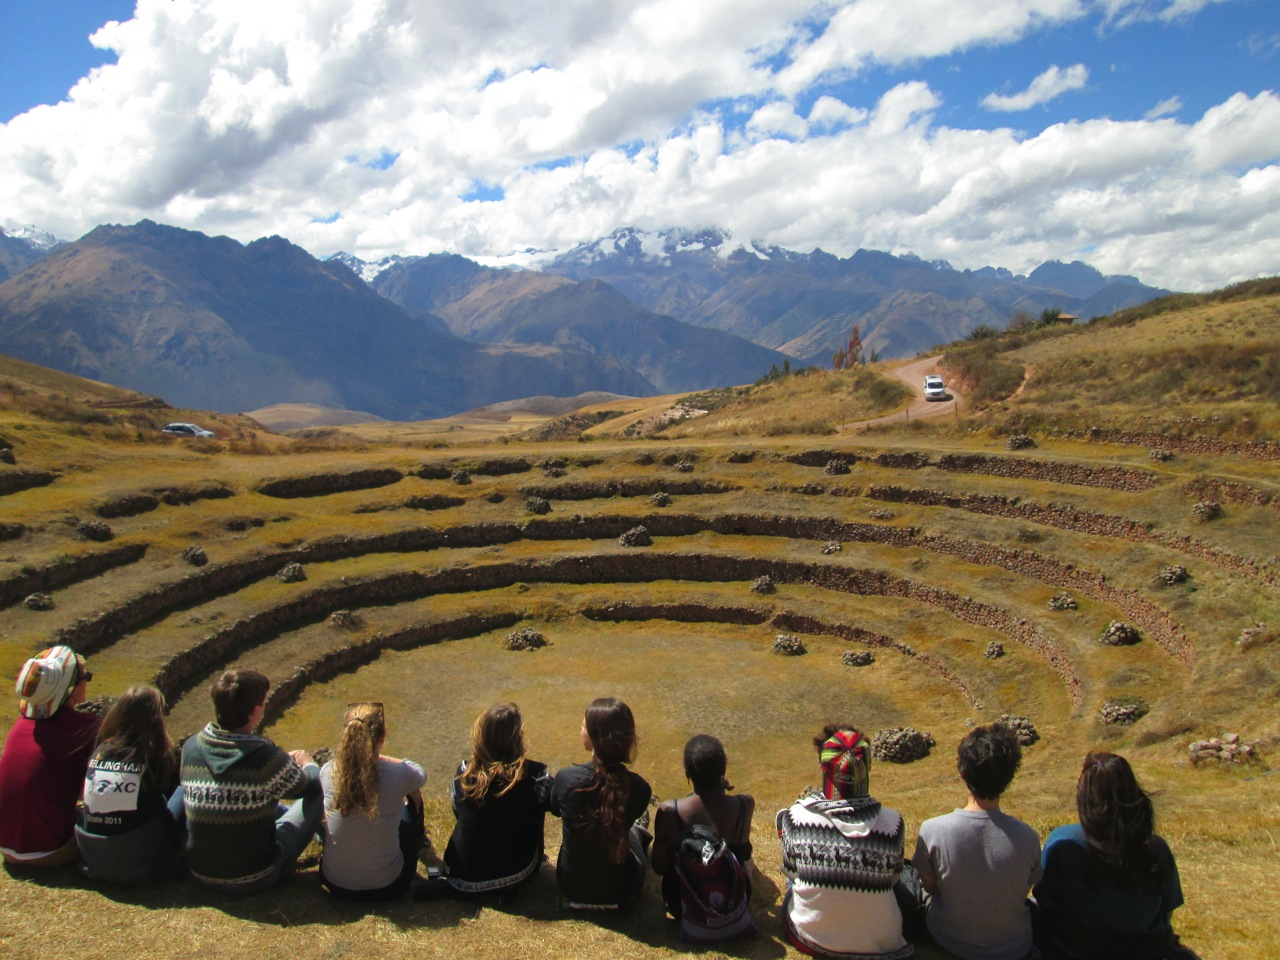 Summer Program - Adventure/Trips | Experiment in International Living: Peru - Ancient and Contemporary Exploration